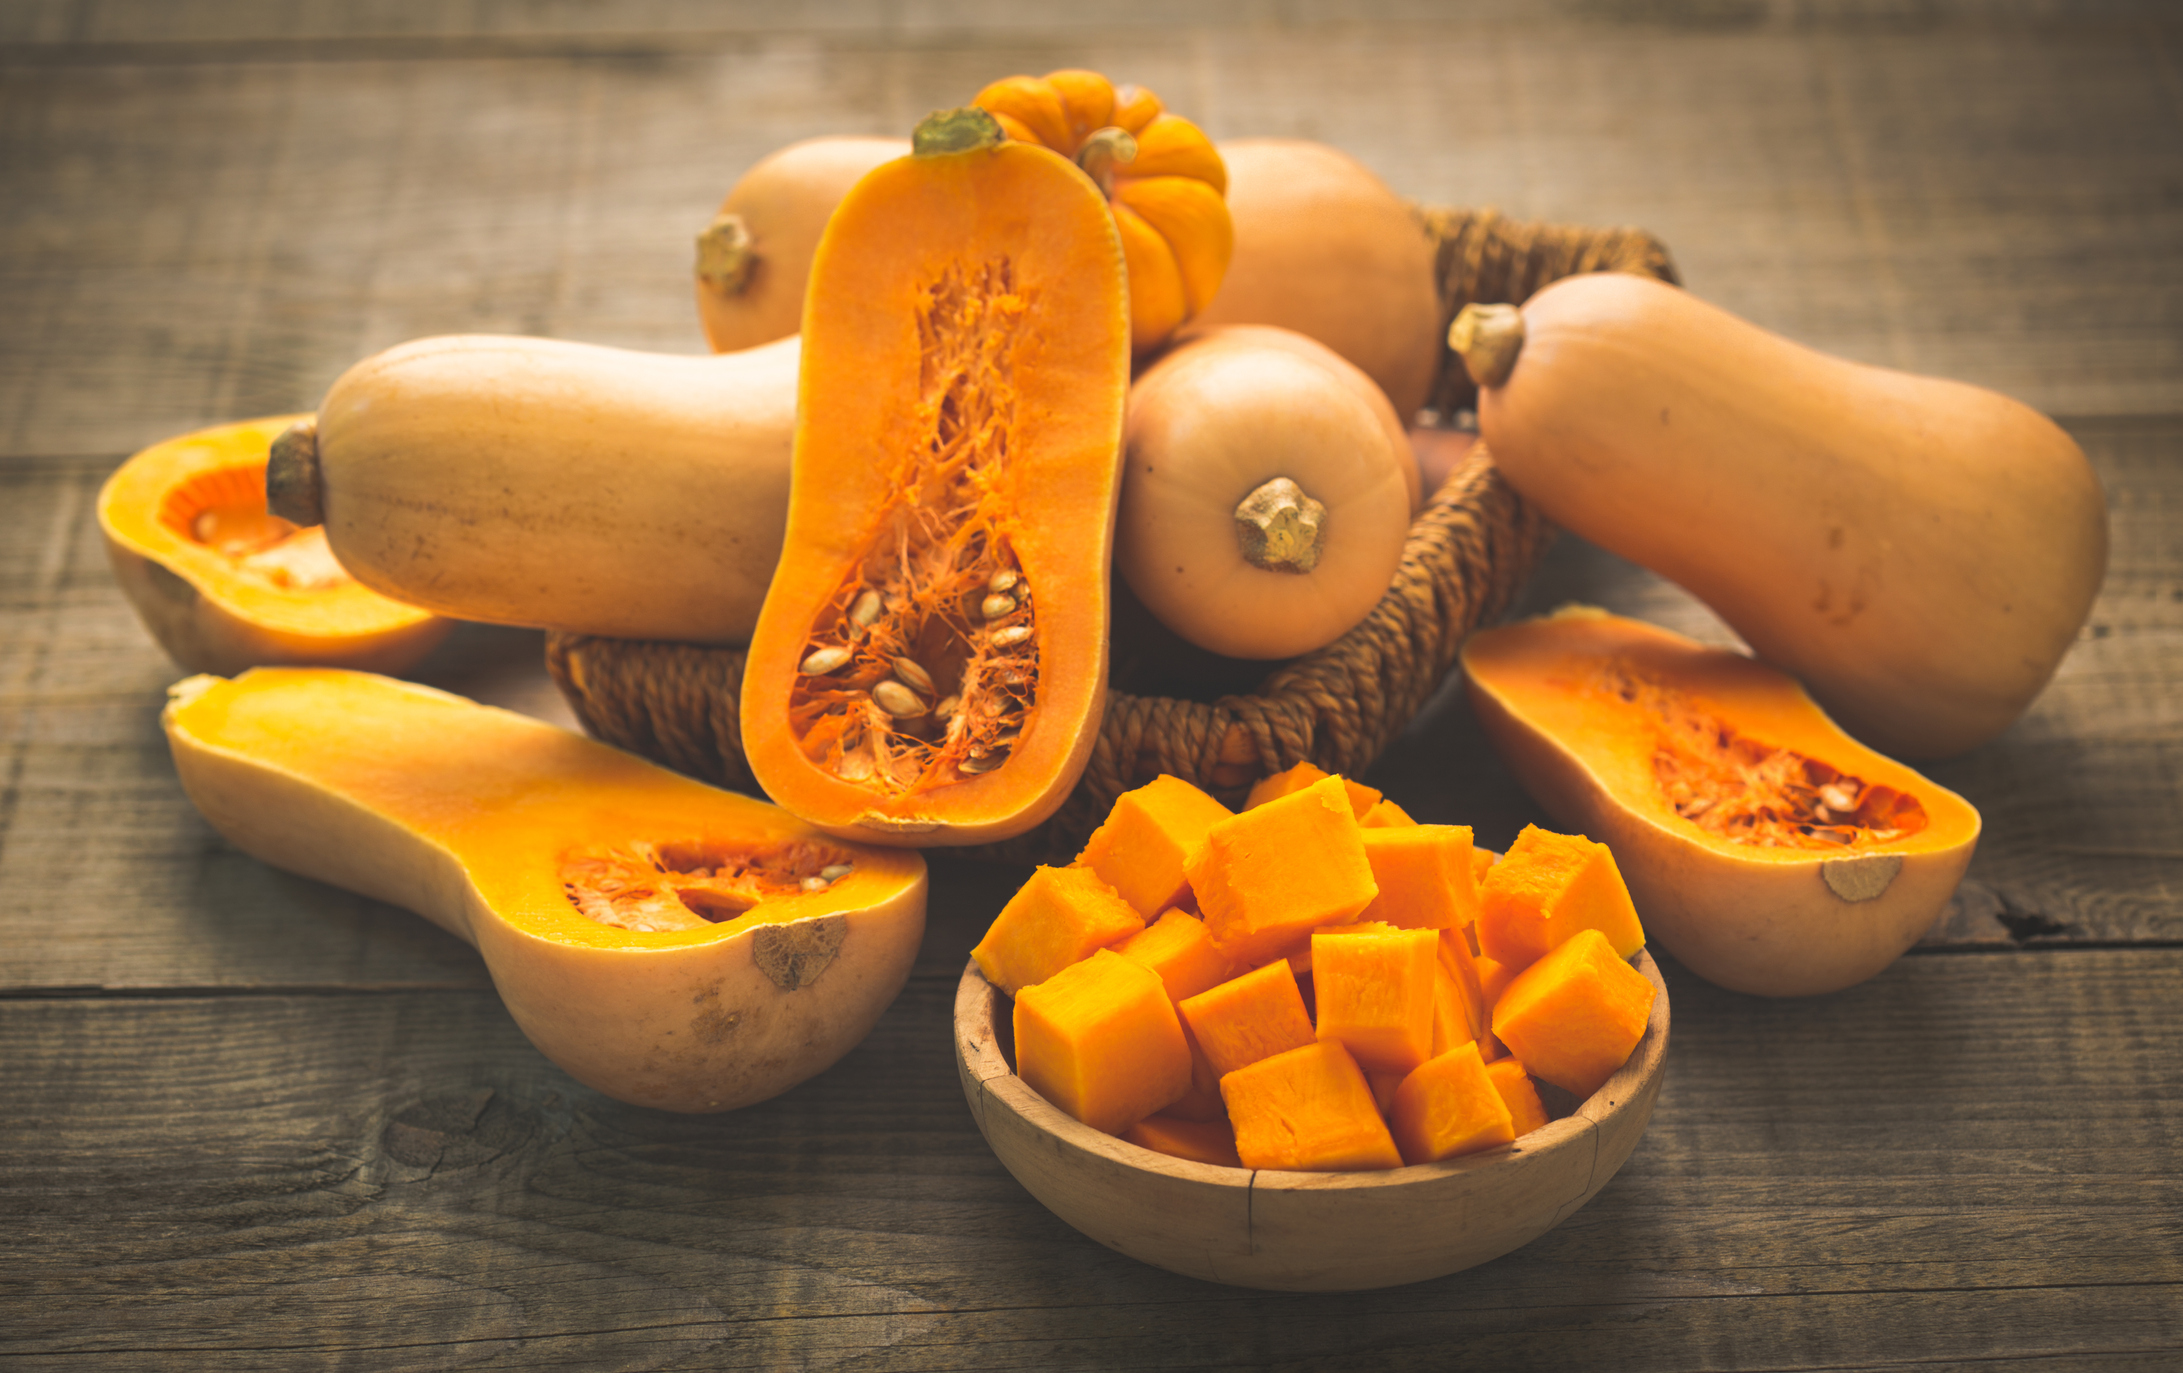 Butternut squash products recalled over listeria contamination concerns